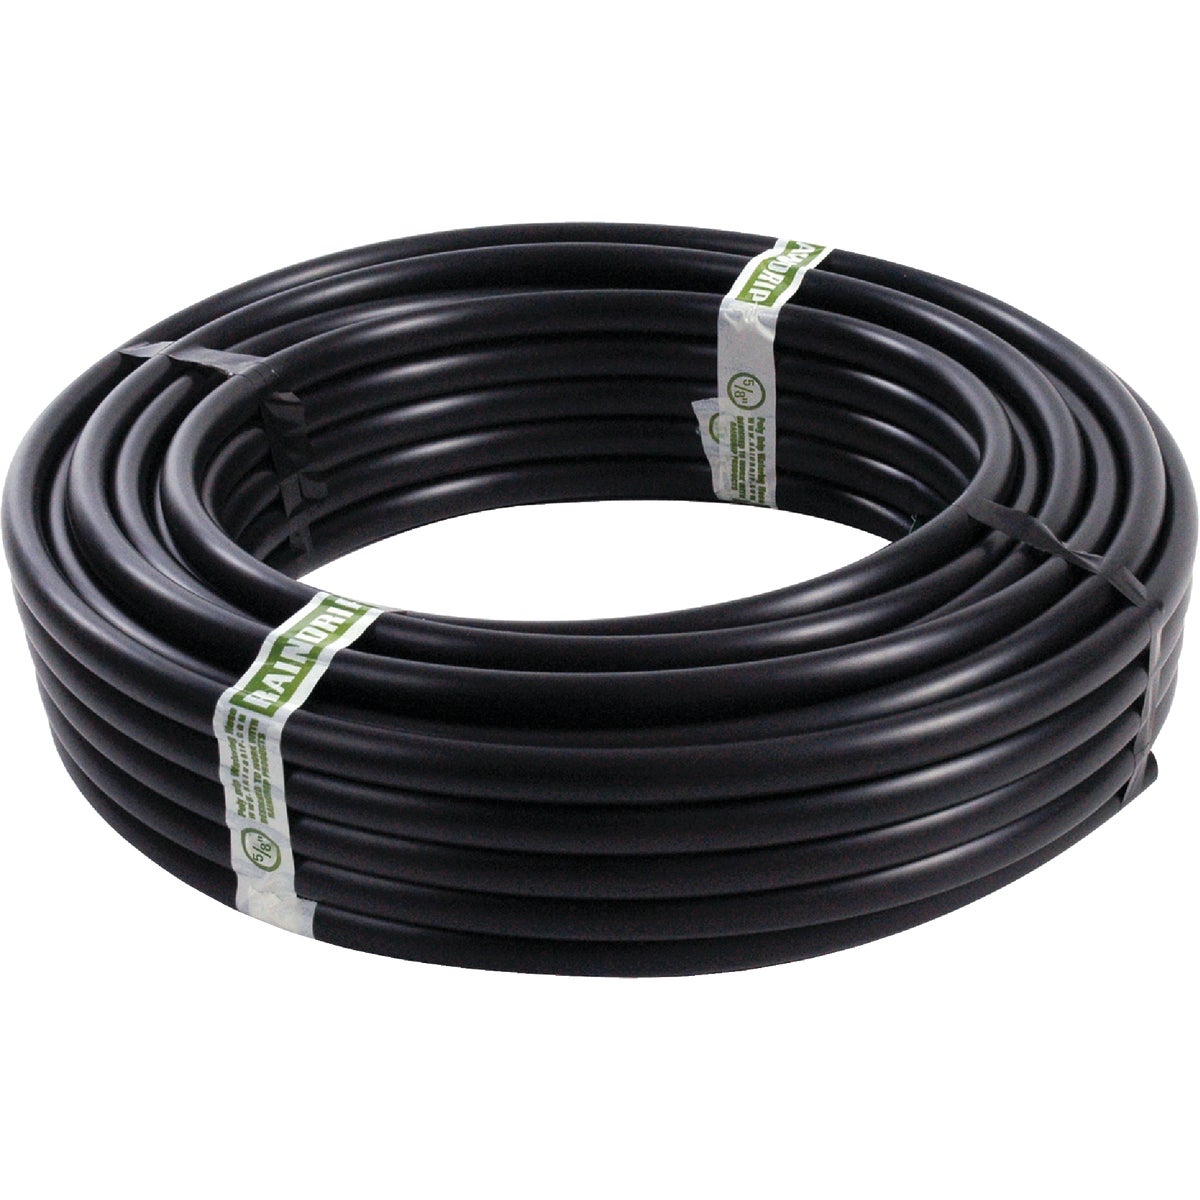 "5/8""X50' DRIP WATER HOSE - 061005P by Raindrip Inc"